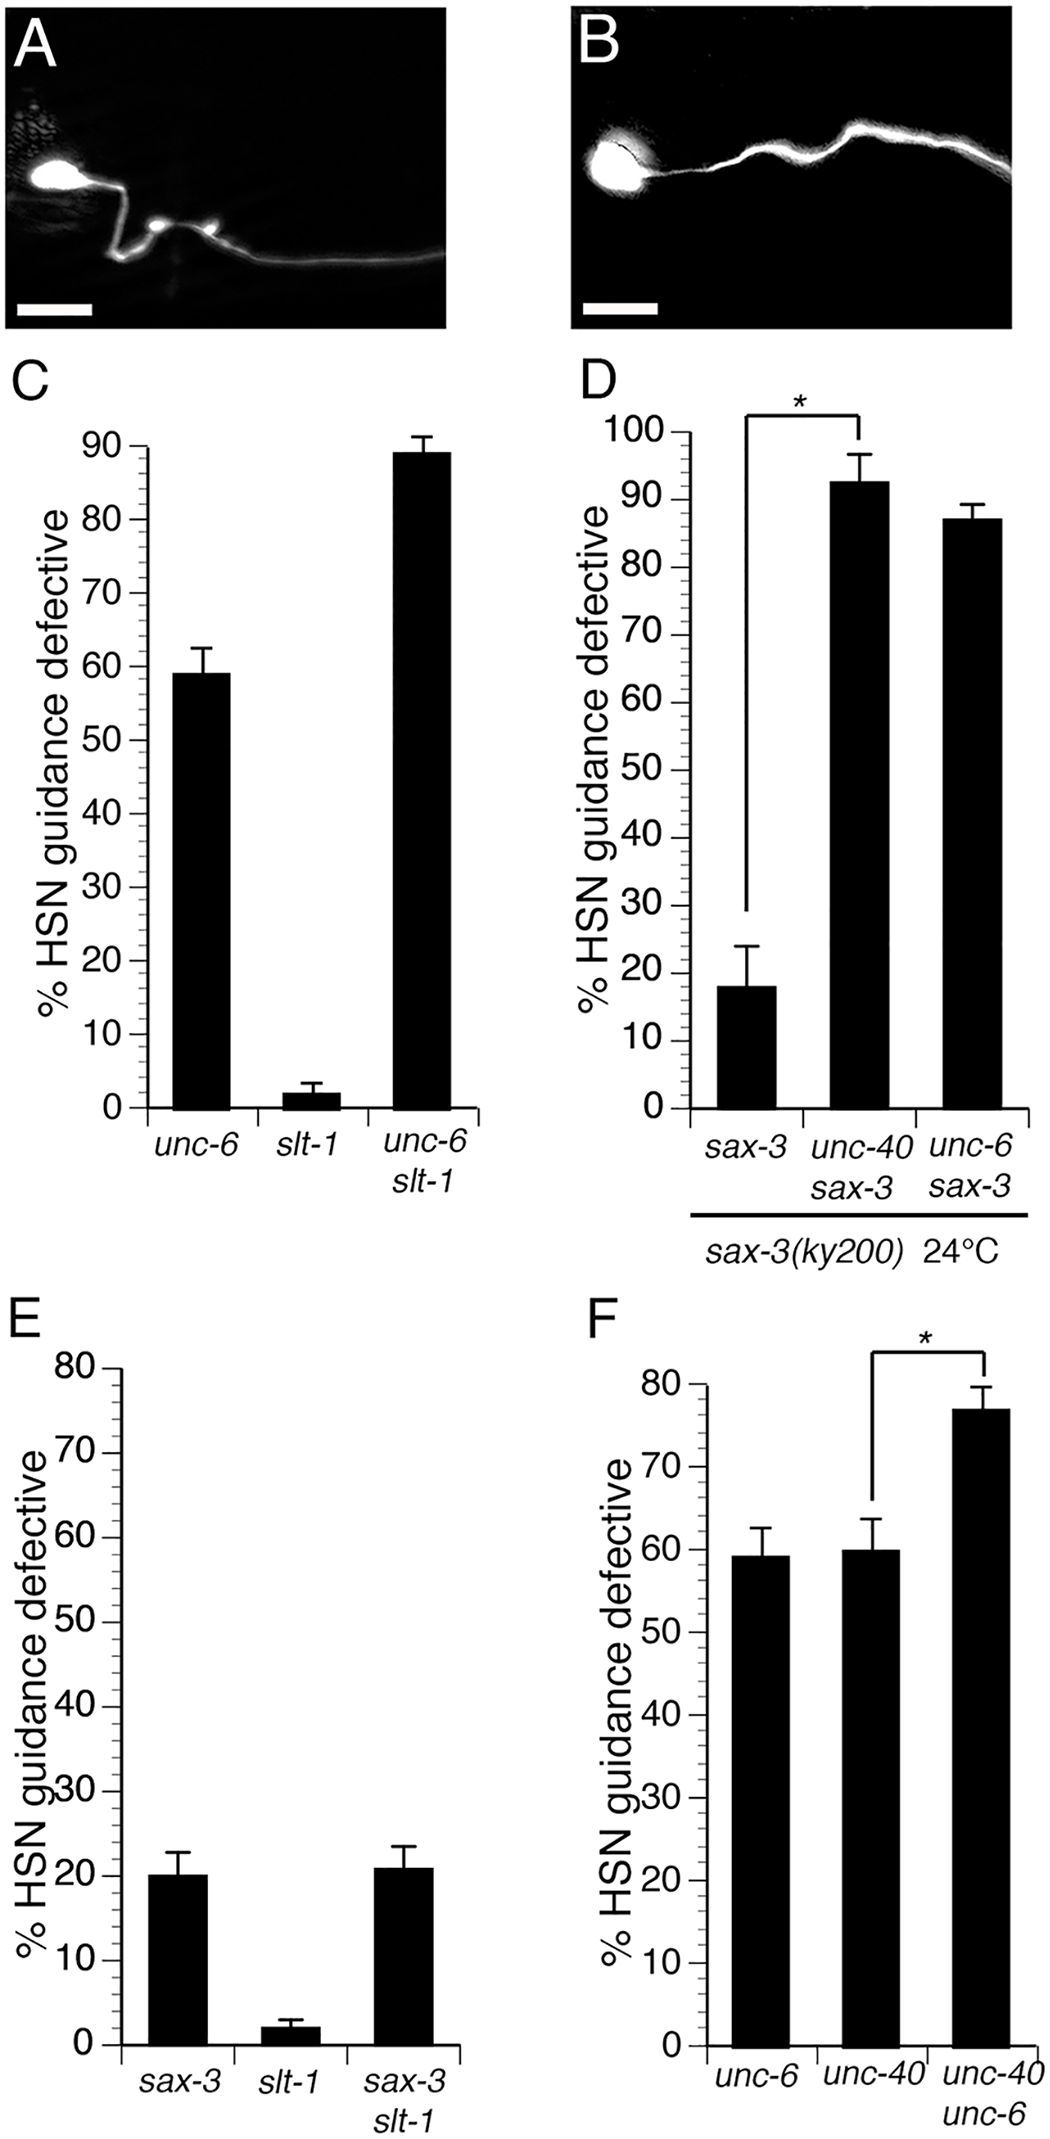 Interactions between the UNC-6 and SLT-1 signaling pathways in the HSN neuron.